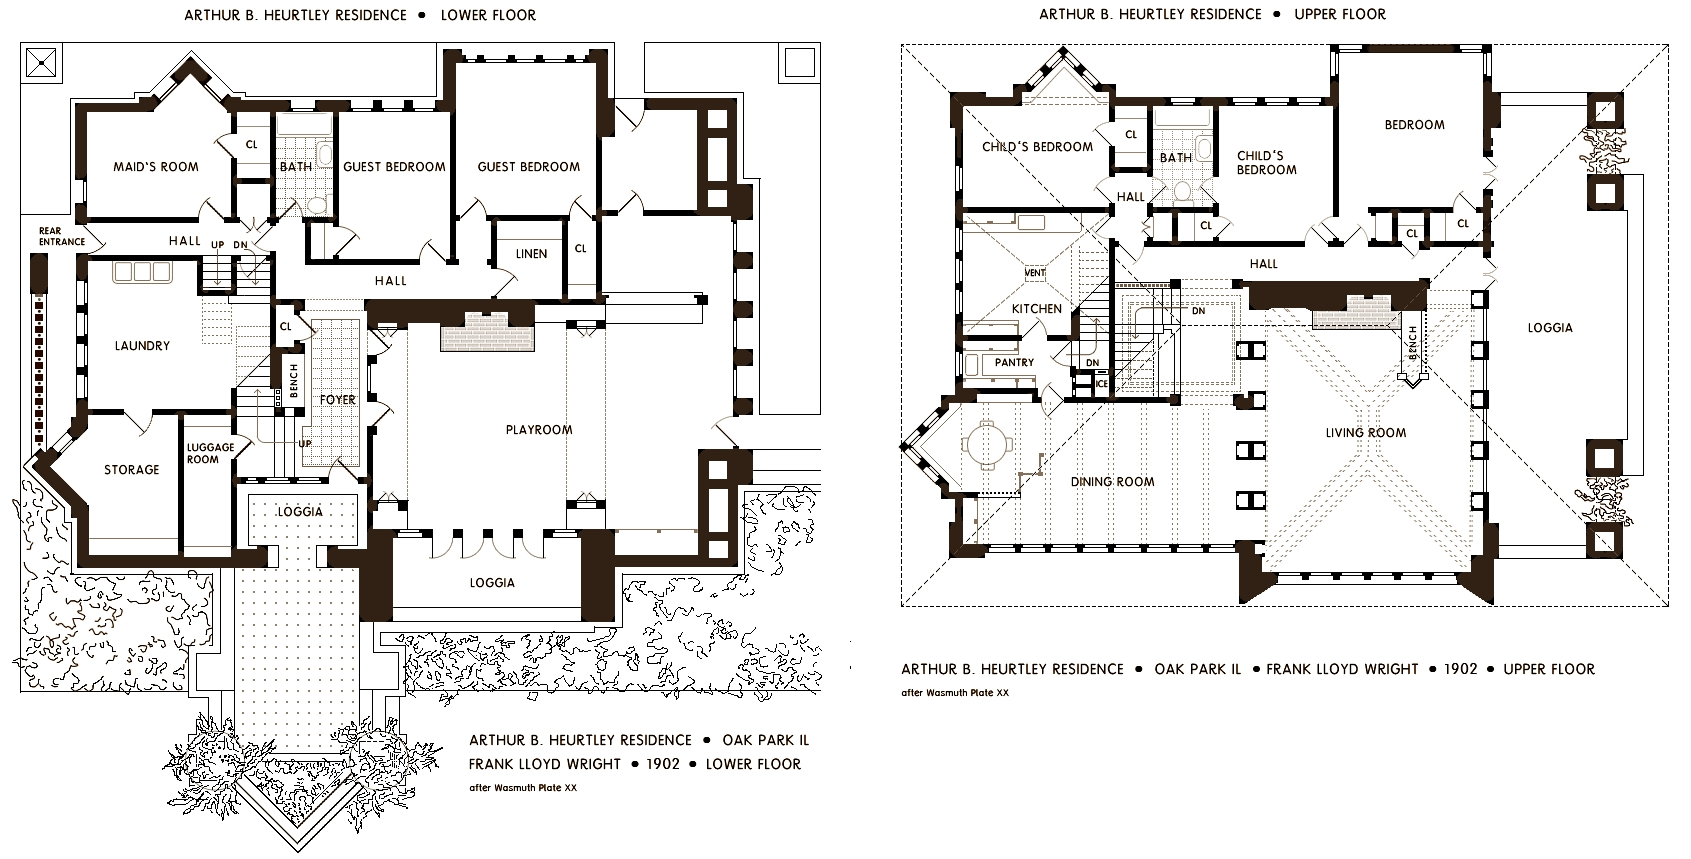 Frank lloyd wright s oak park illinois designs the Frank home plans